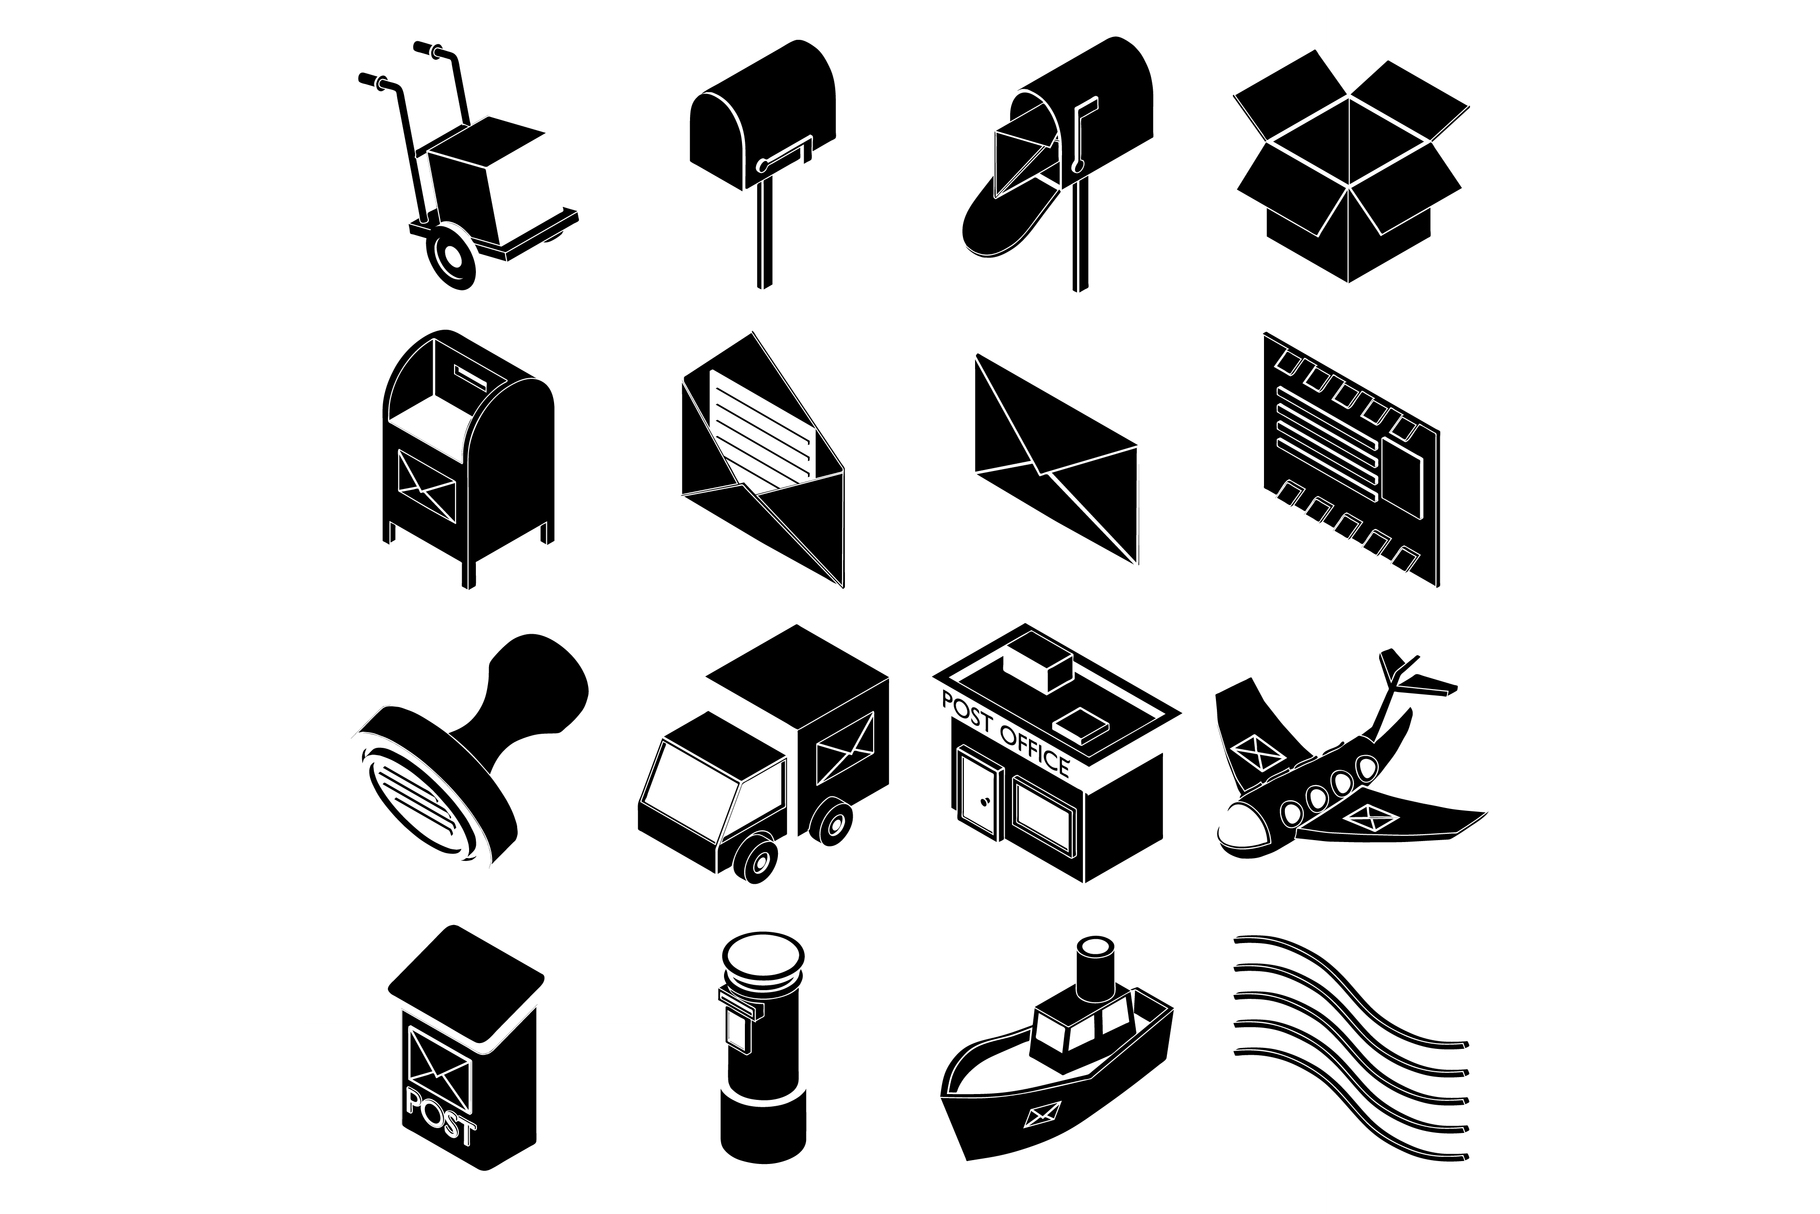 Poste service icons set, simple style example image 1